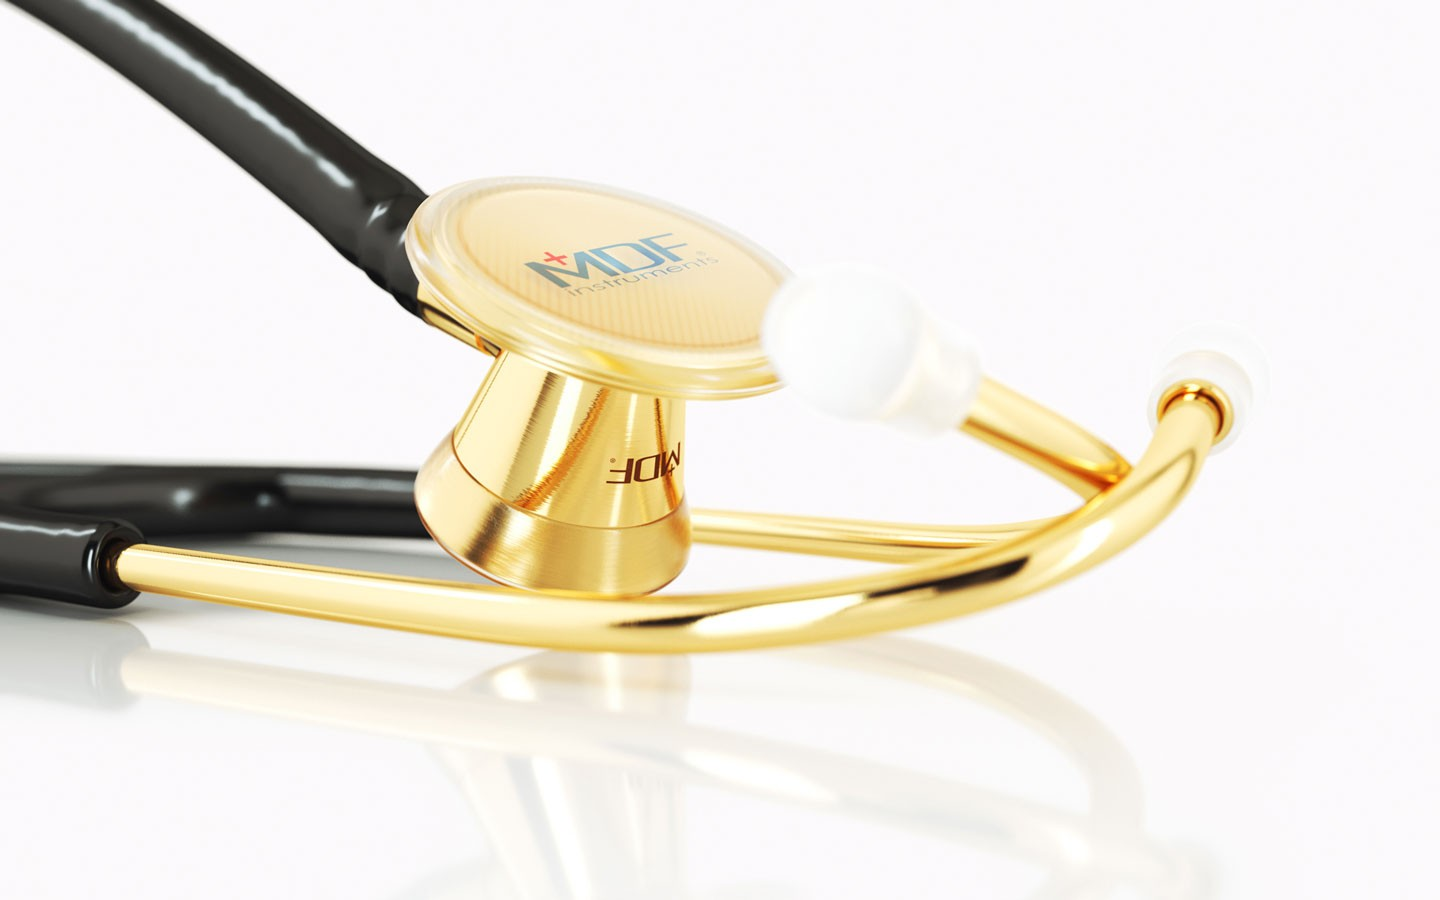 Cardiology stethoscope Premium auscultation High quality cardiology stethoscope Adult Infant Pediatric Metal Finish